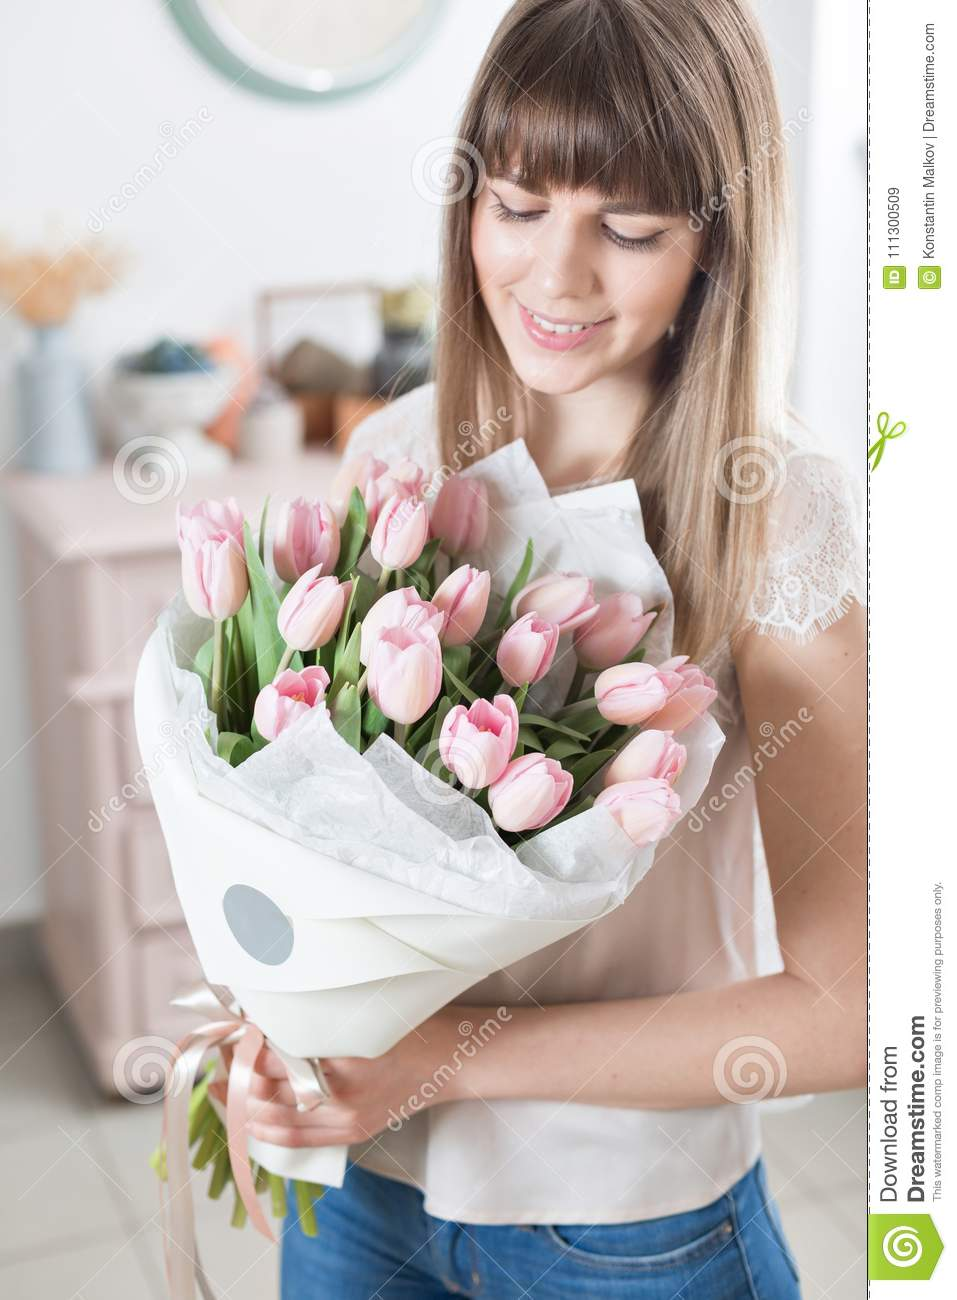 Sunny spring morning. Young happy woman holding a beautiful bunch of pink tulips in her hands. Present for a smiles girl